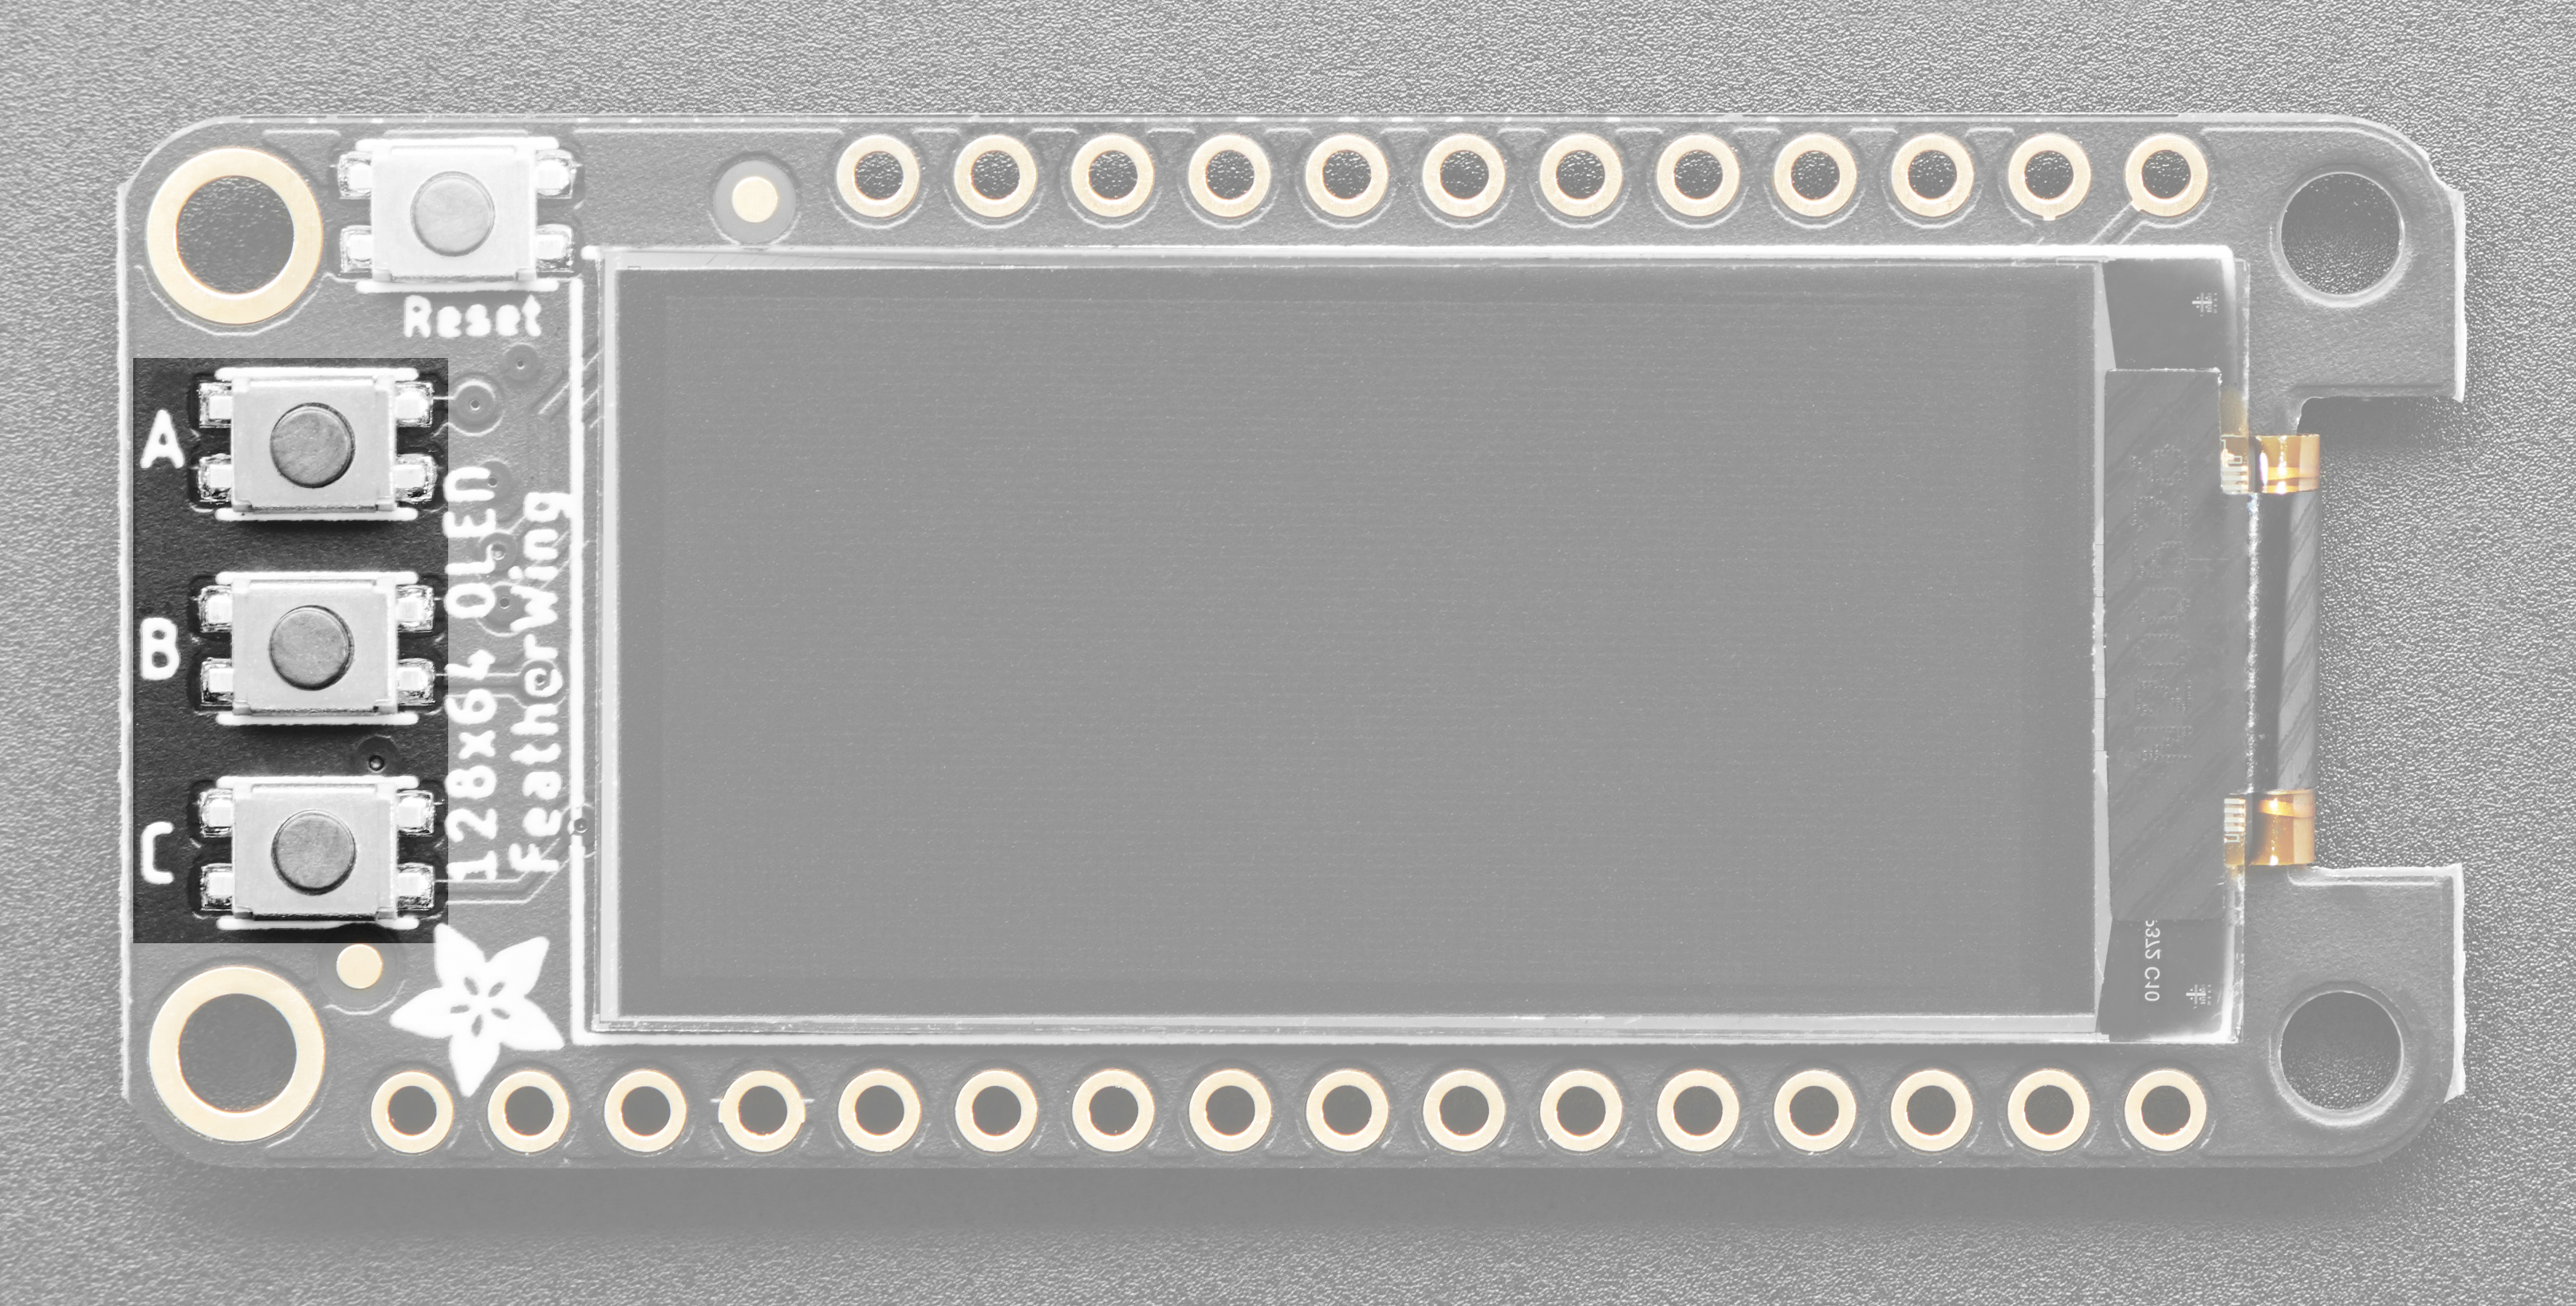 adafruit_products_FW_OLED_128x64_top_pinouts_buttons.jpg